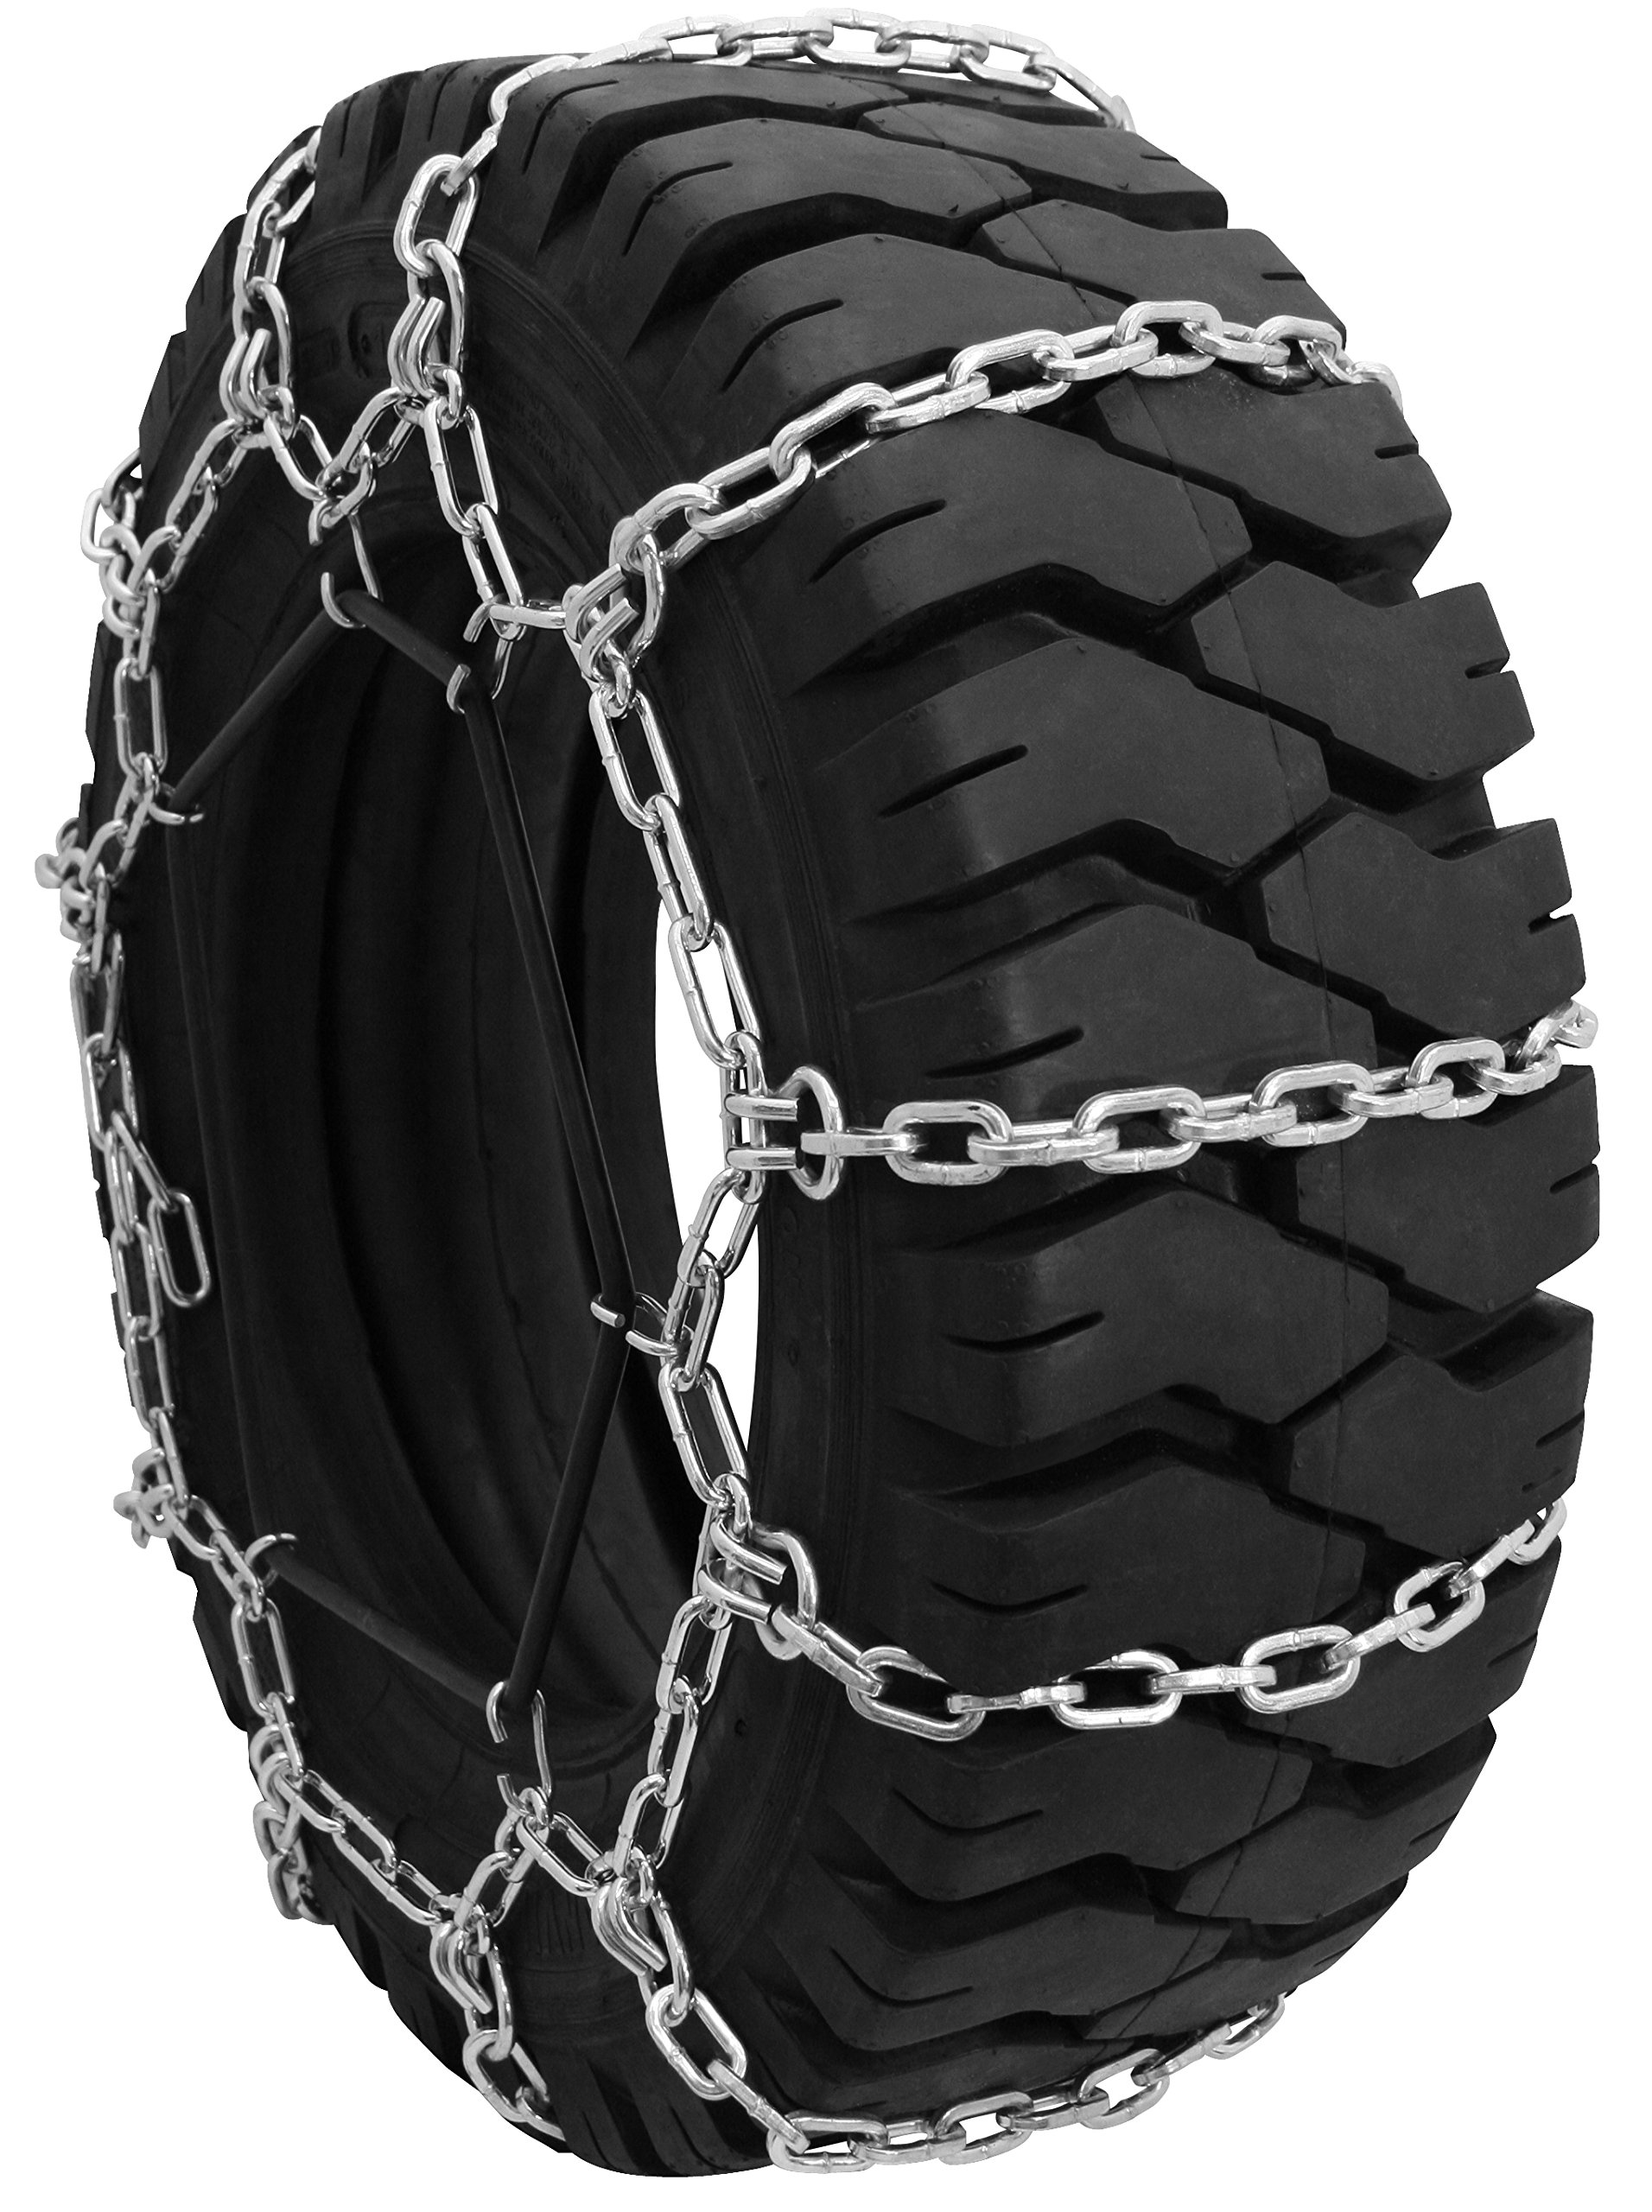 Grizzlar GTU-111 Square Rod Forklift Chain 7.00-12, 7.00-15NHS, 8.15-15, 27x8.50-15NHS, 28x9-15, 28x9.5-15, 29x8-15, 29x9-15, 30x8-15NHS by Grizzlar